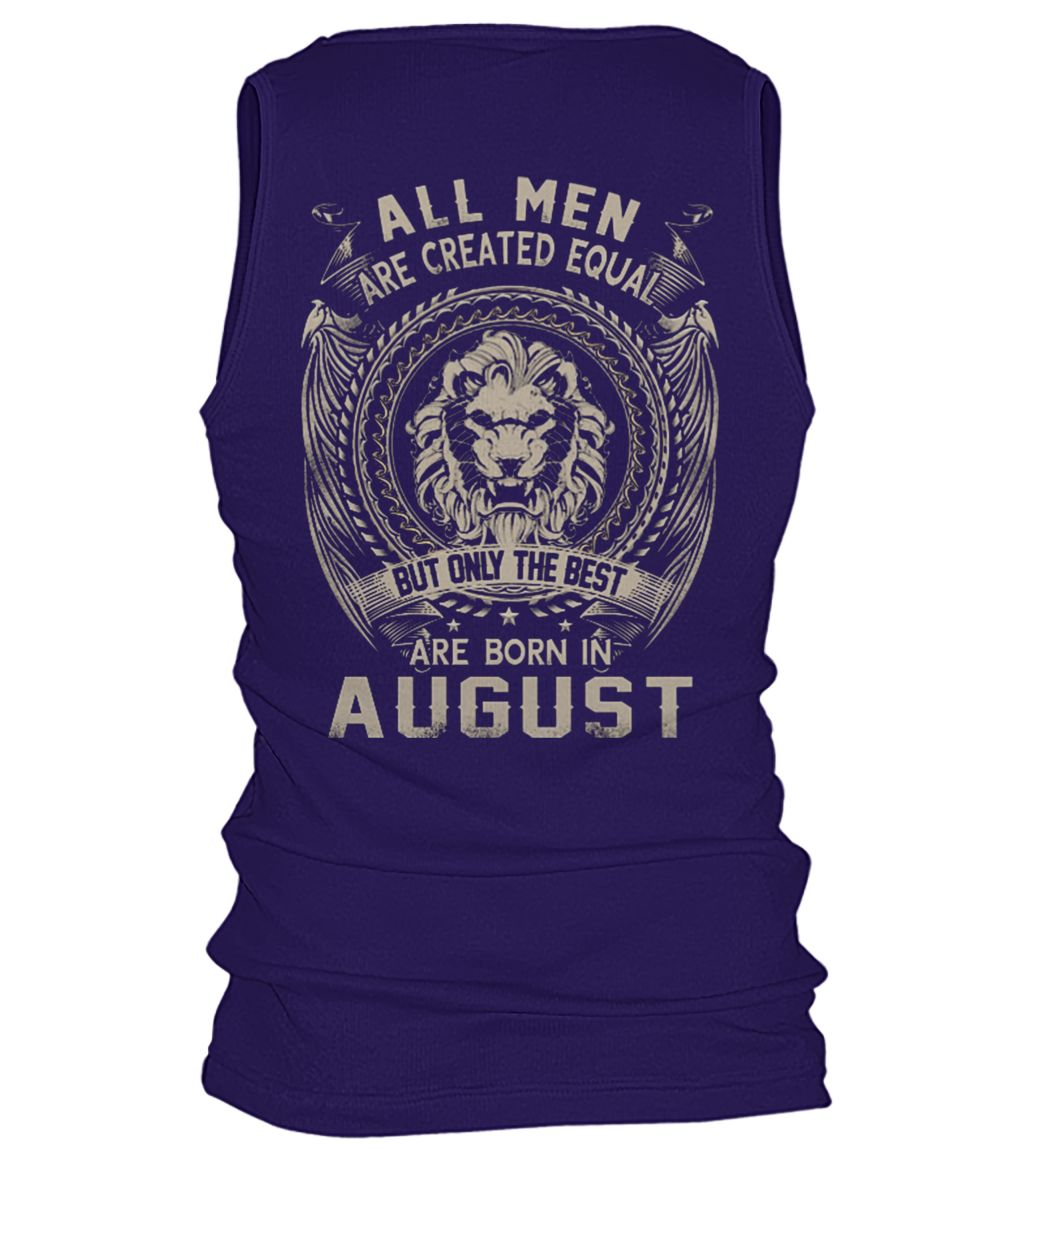 All men created equal but the best born in august men's tank top